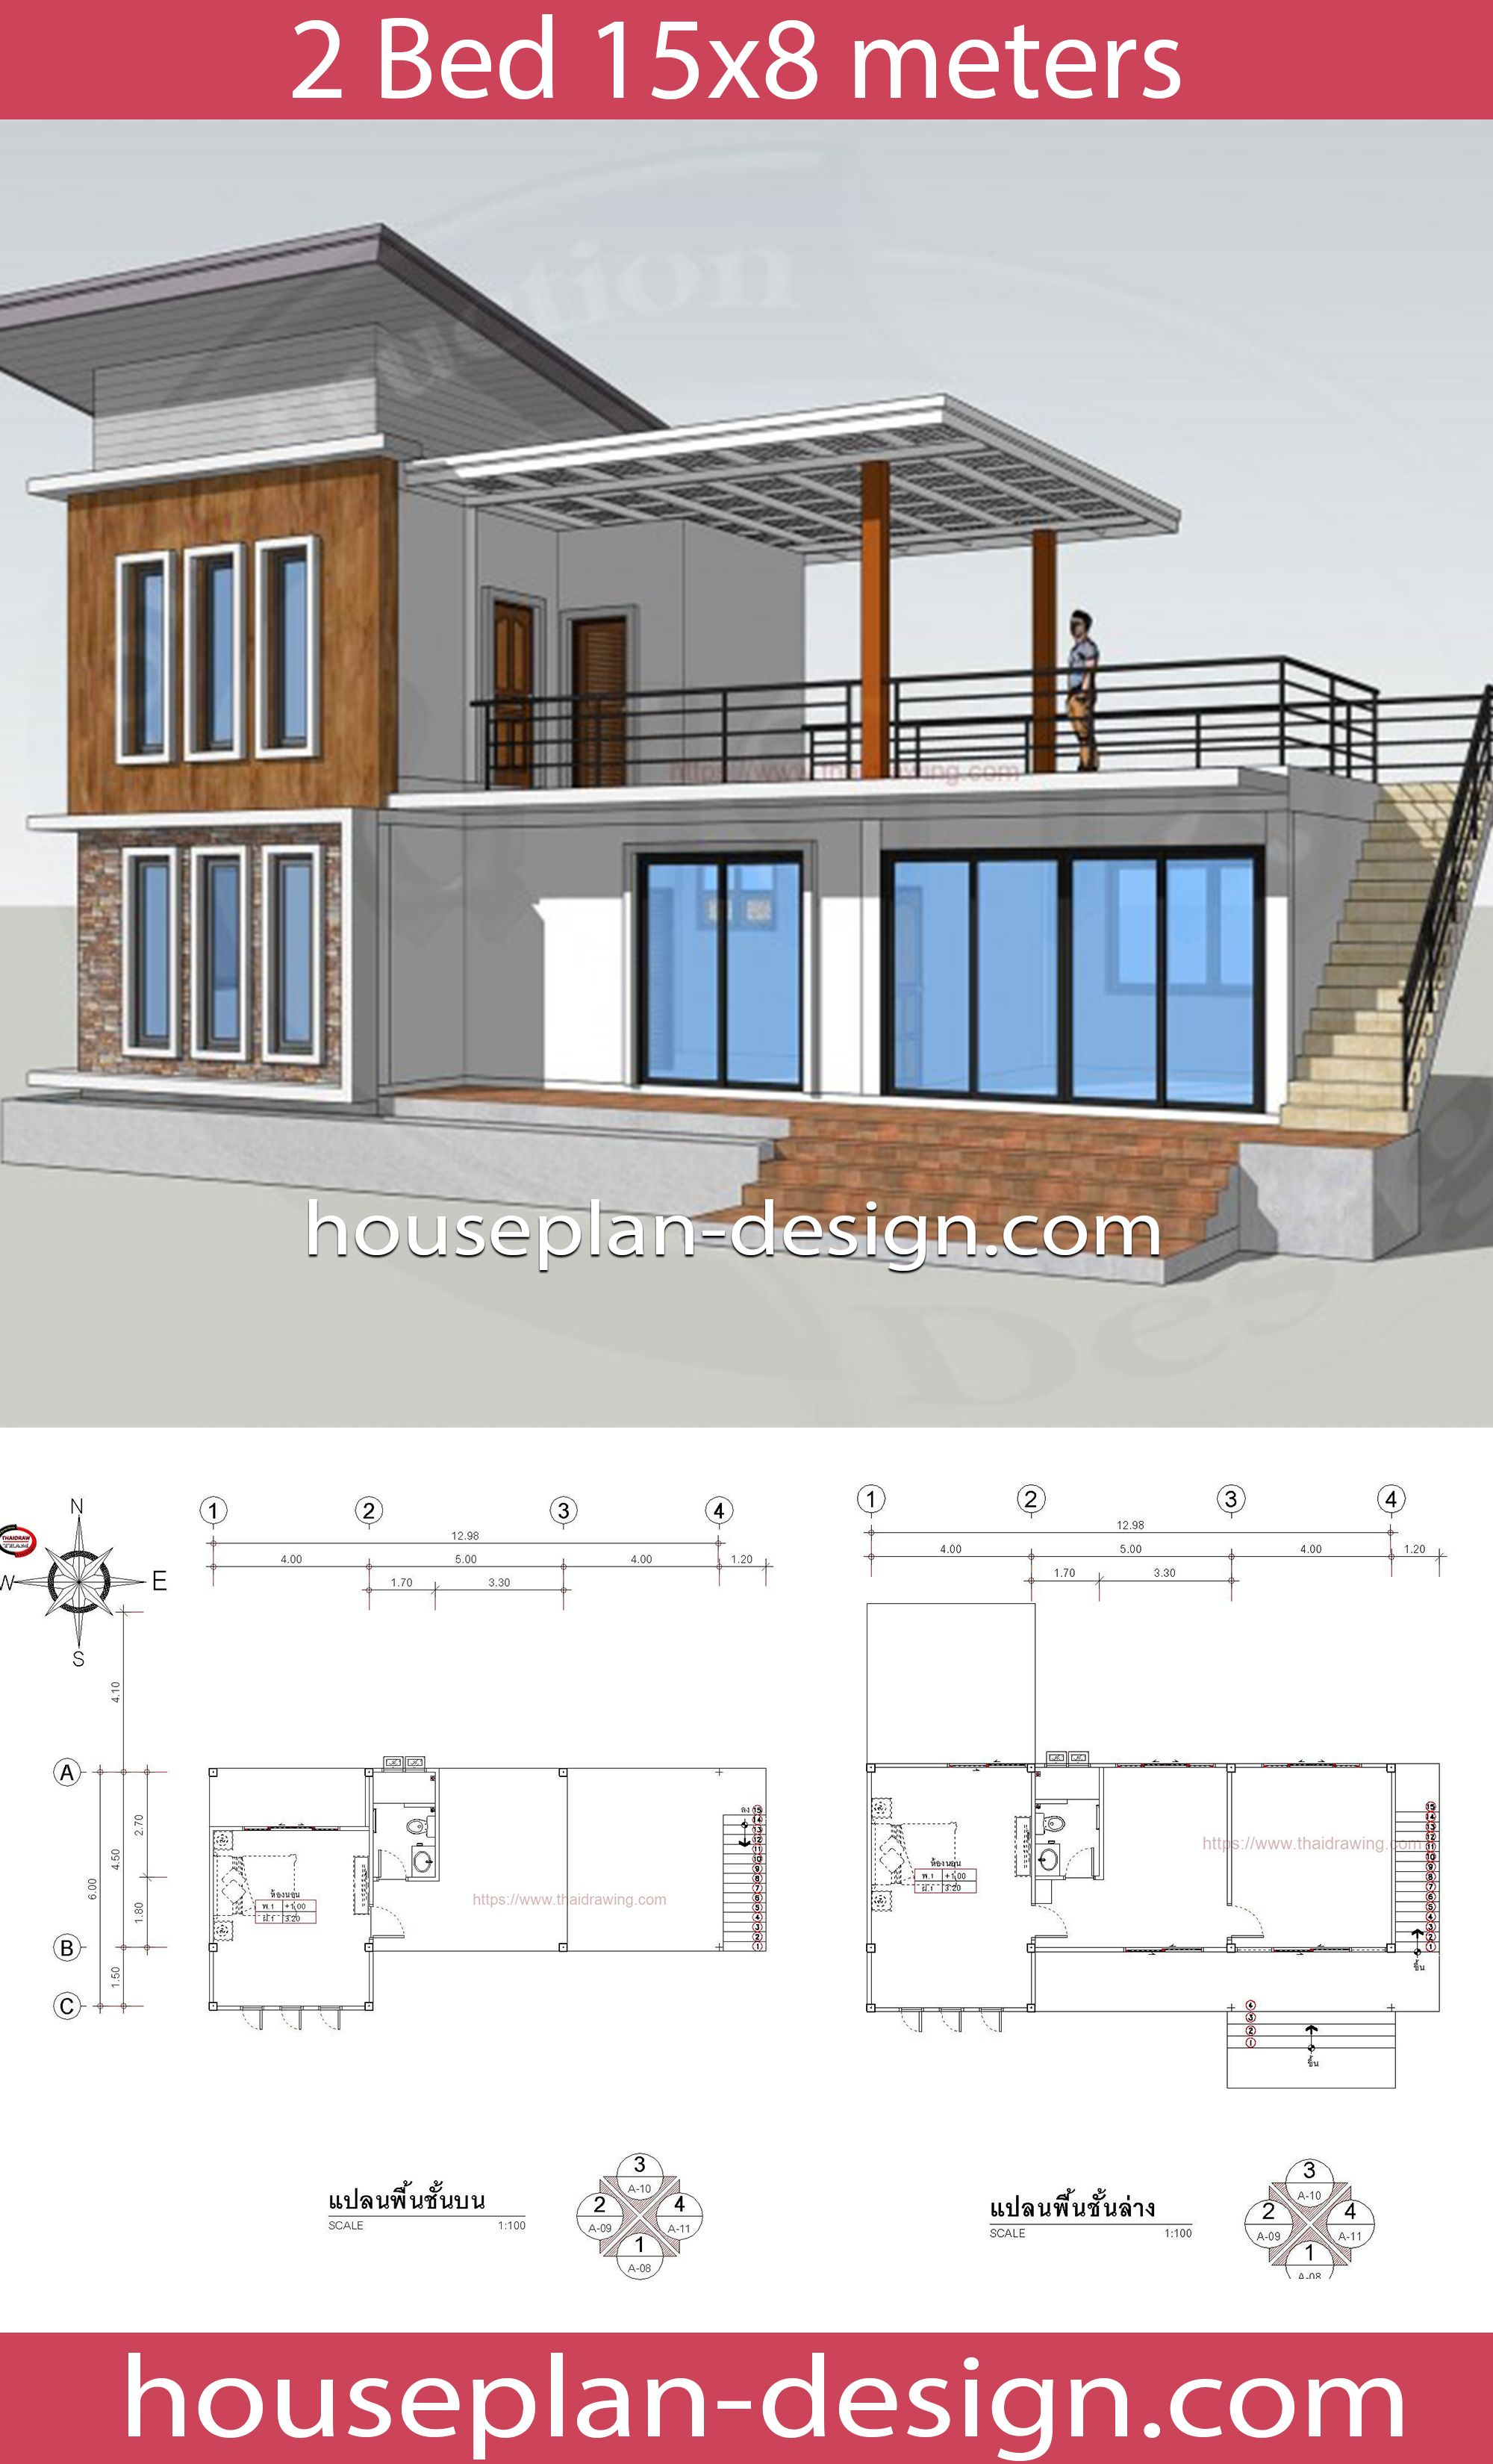 House Plan Design House Design Idea 15x8 With 2 Bedrooms House Design Home Design Plans Free House Plans